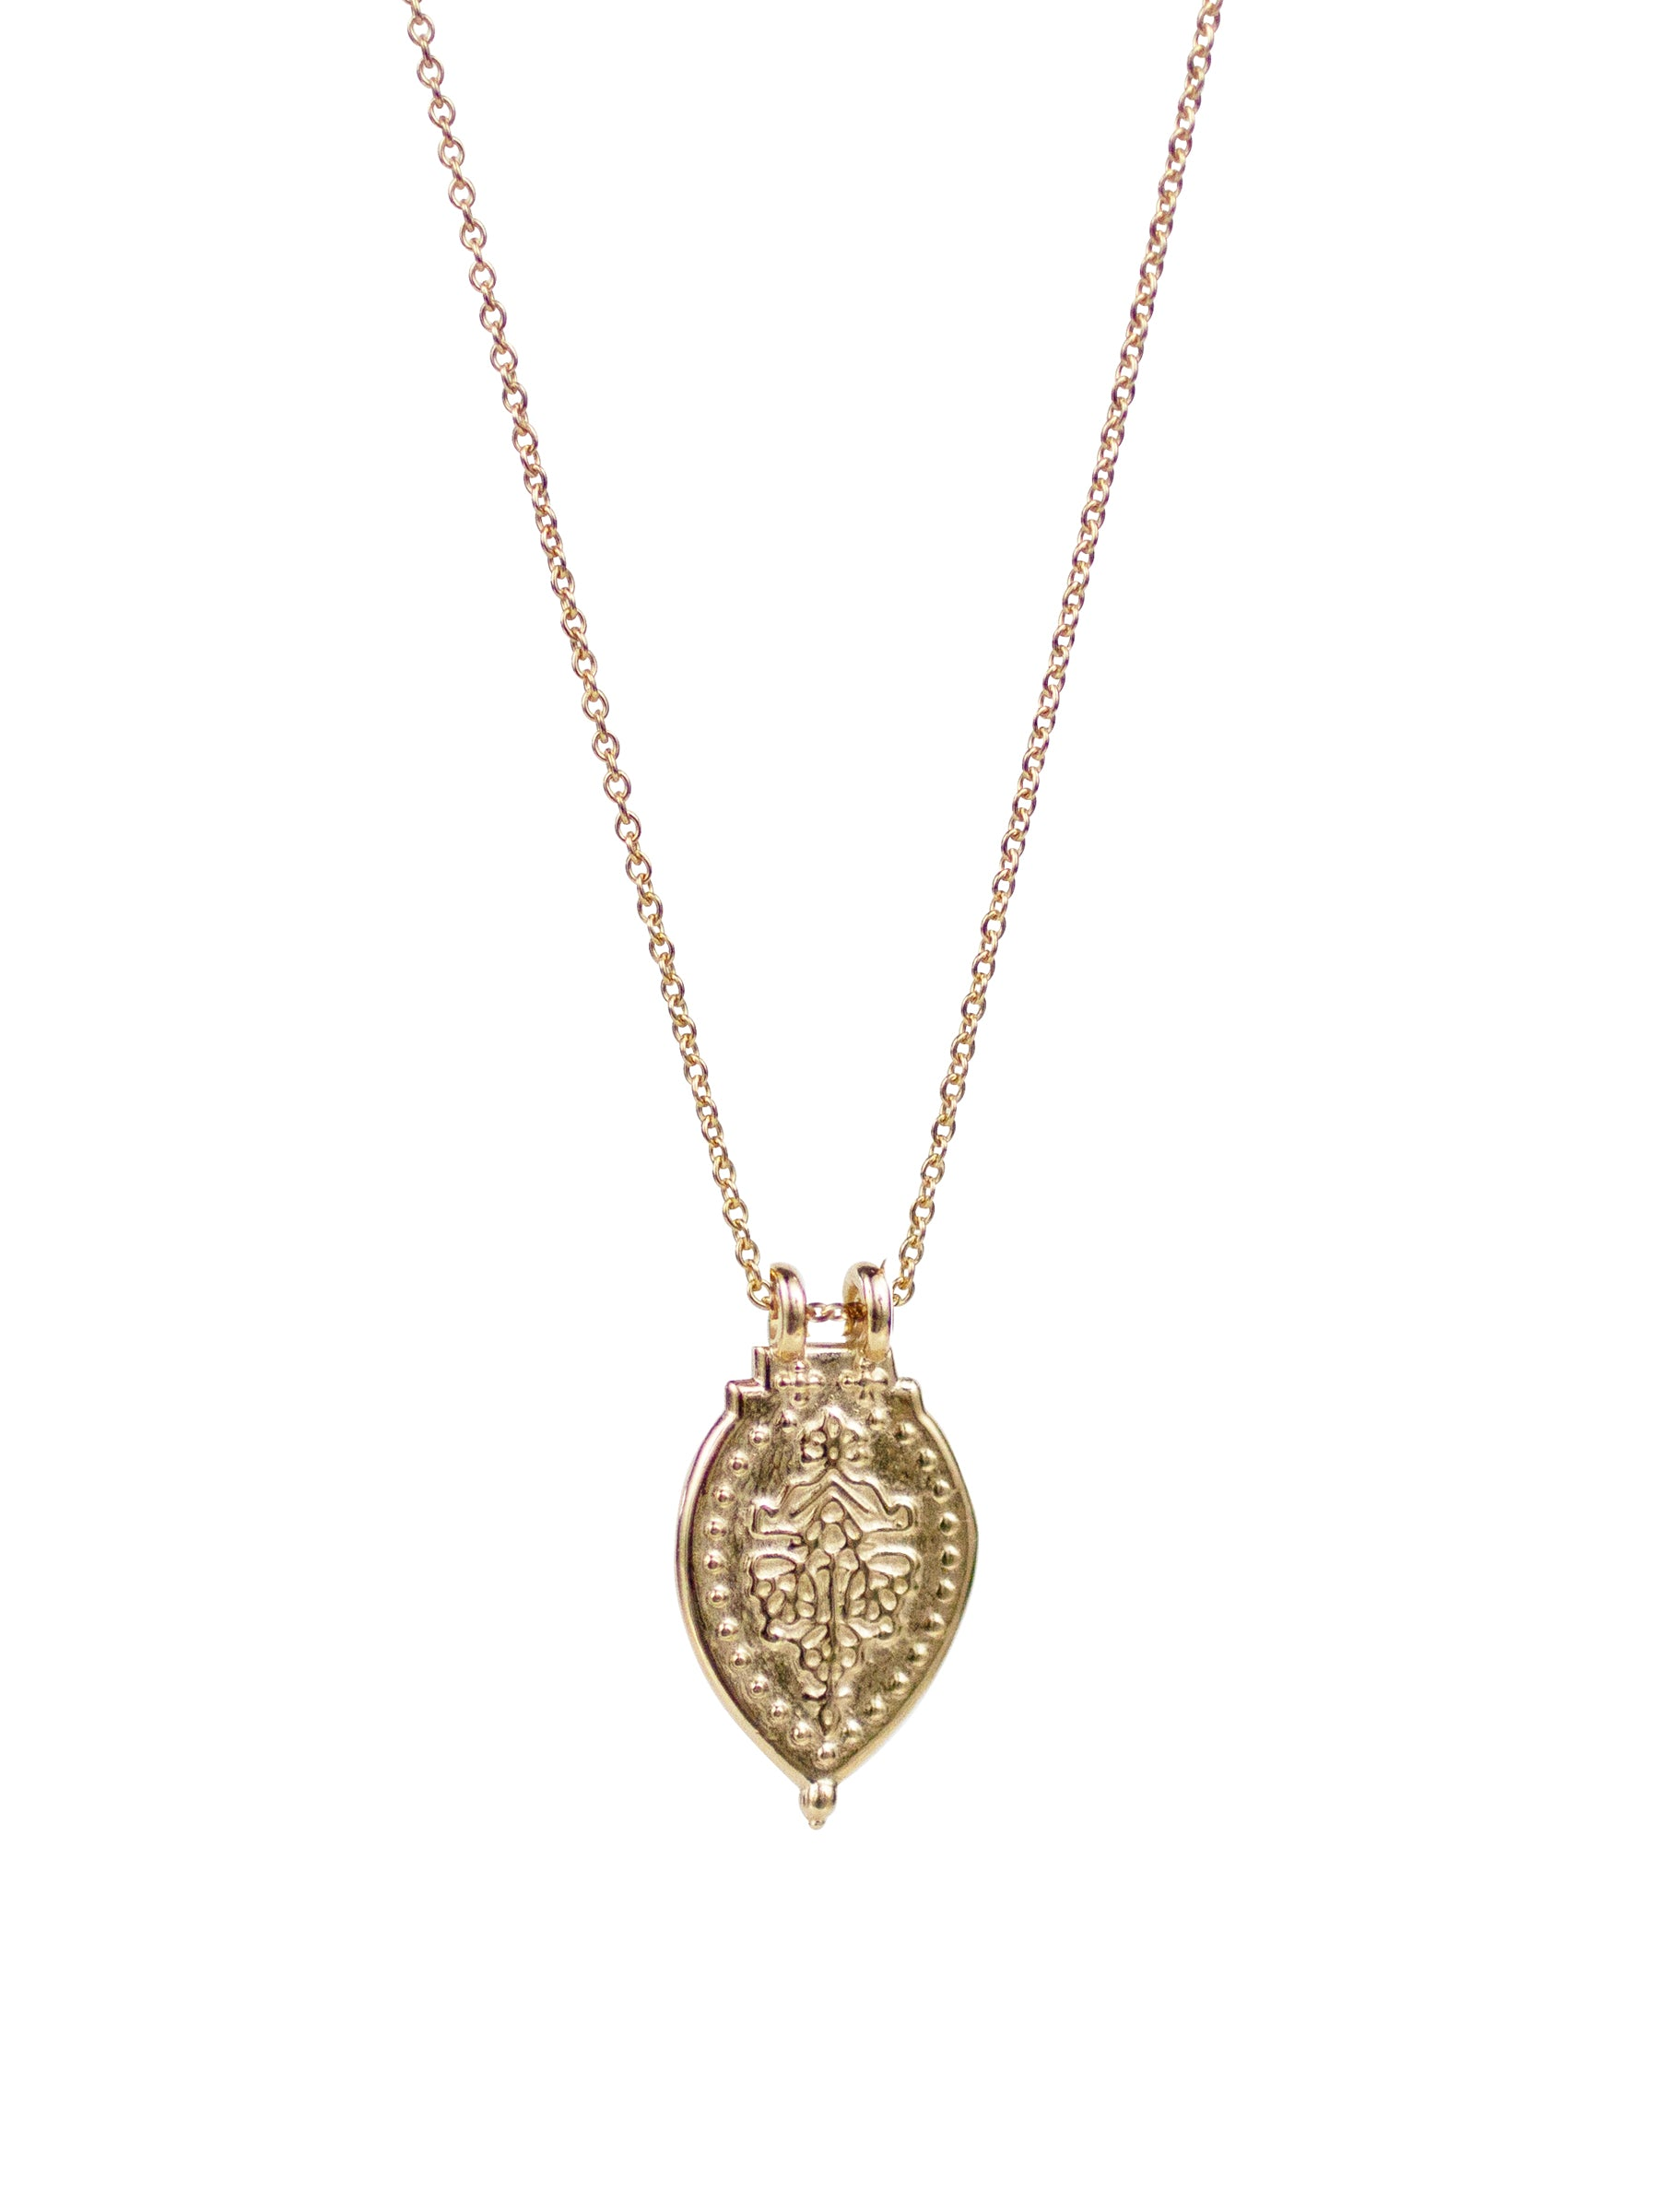 14k Gold PRAYER NECKLACE